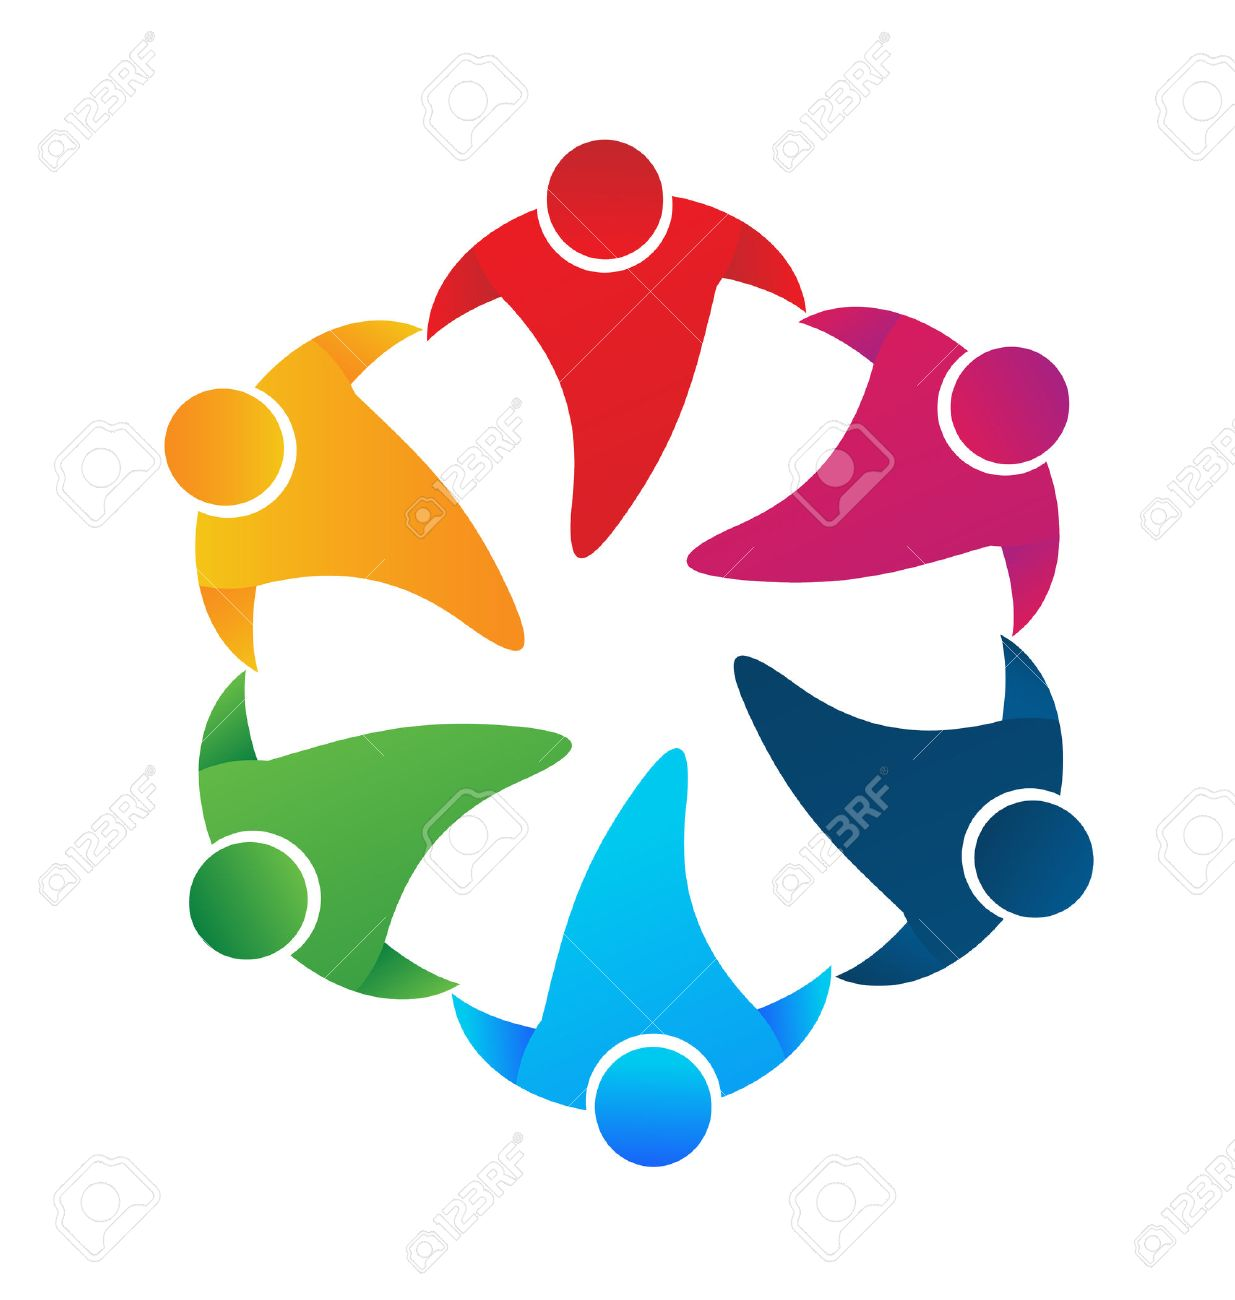 teamwork people holding hands around vector image logo design rh 123rf com  holding hands logo design